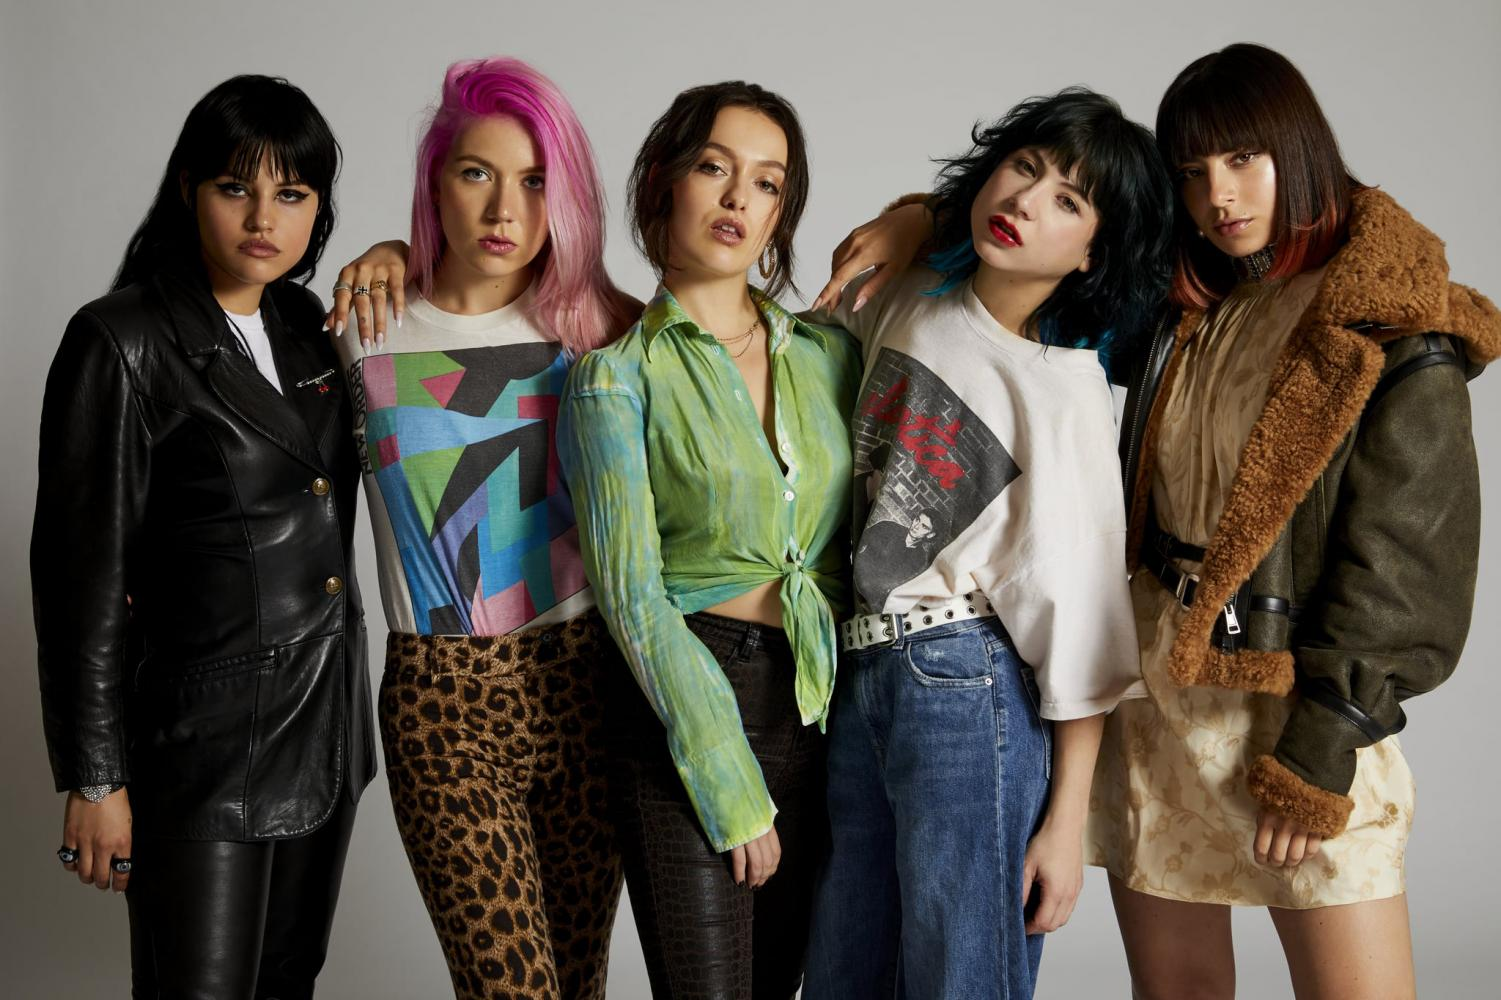 Popstar and producer Charli XCX is the mastermind behind Nasty Cherry, the girlband she wishes she had growing up.